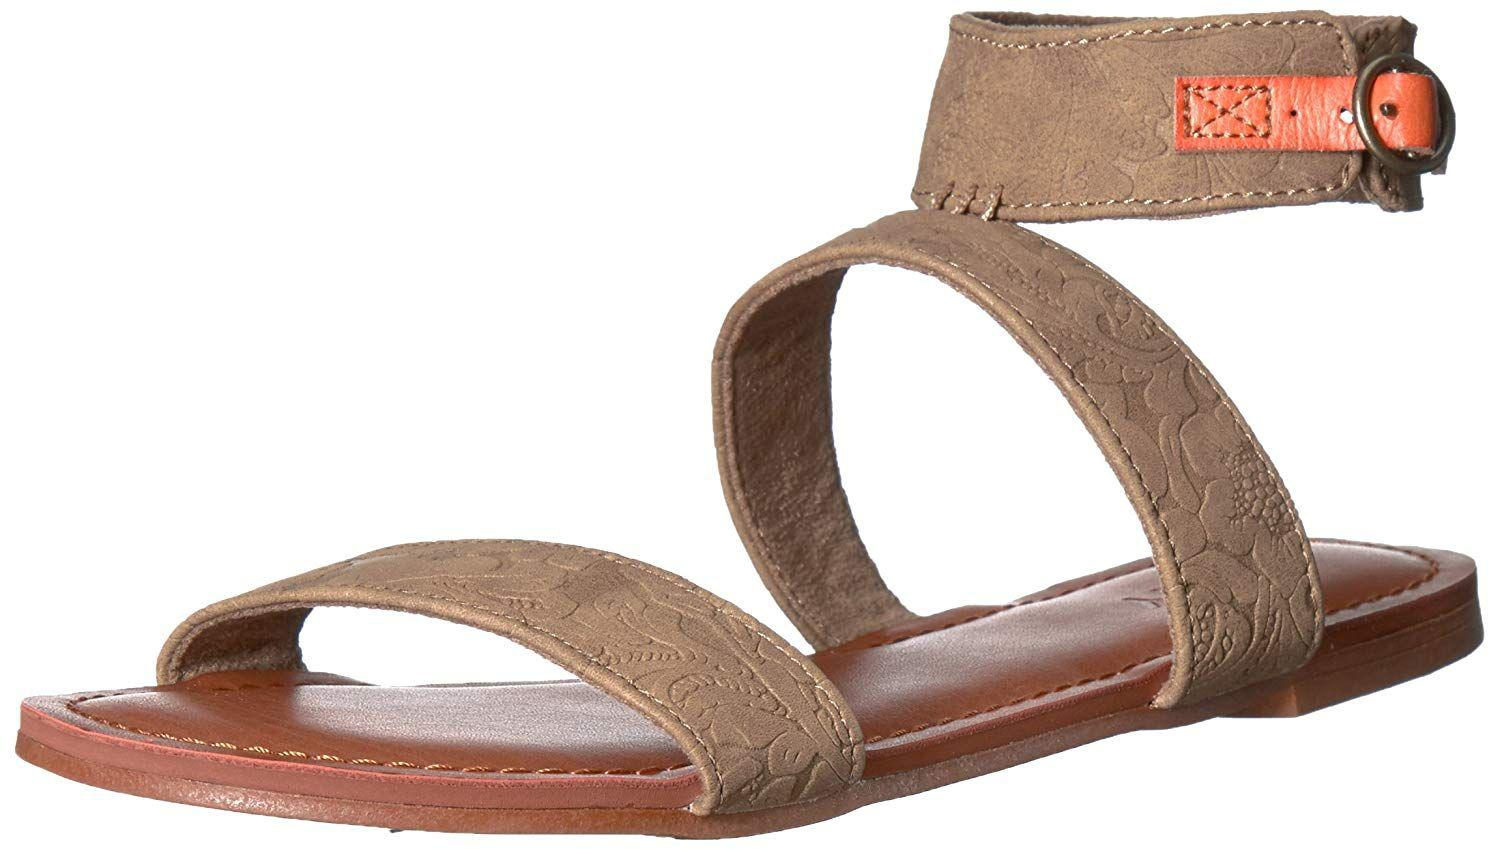 dbcc2be7d Lyst - Roxy Women s Marron Ankle Strap Sandals Flat in White